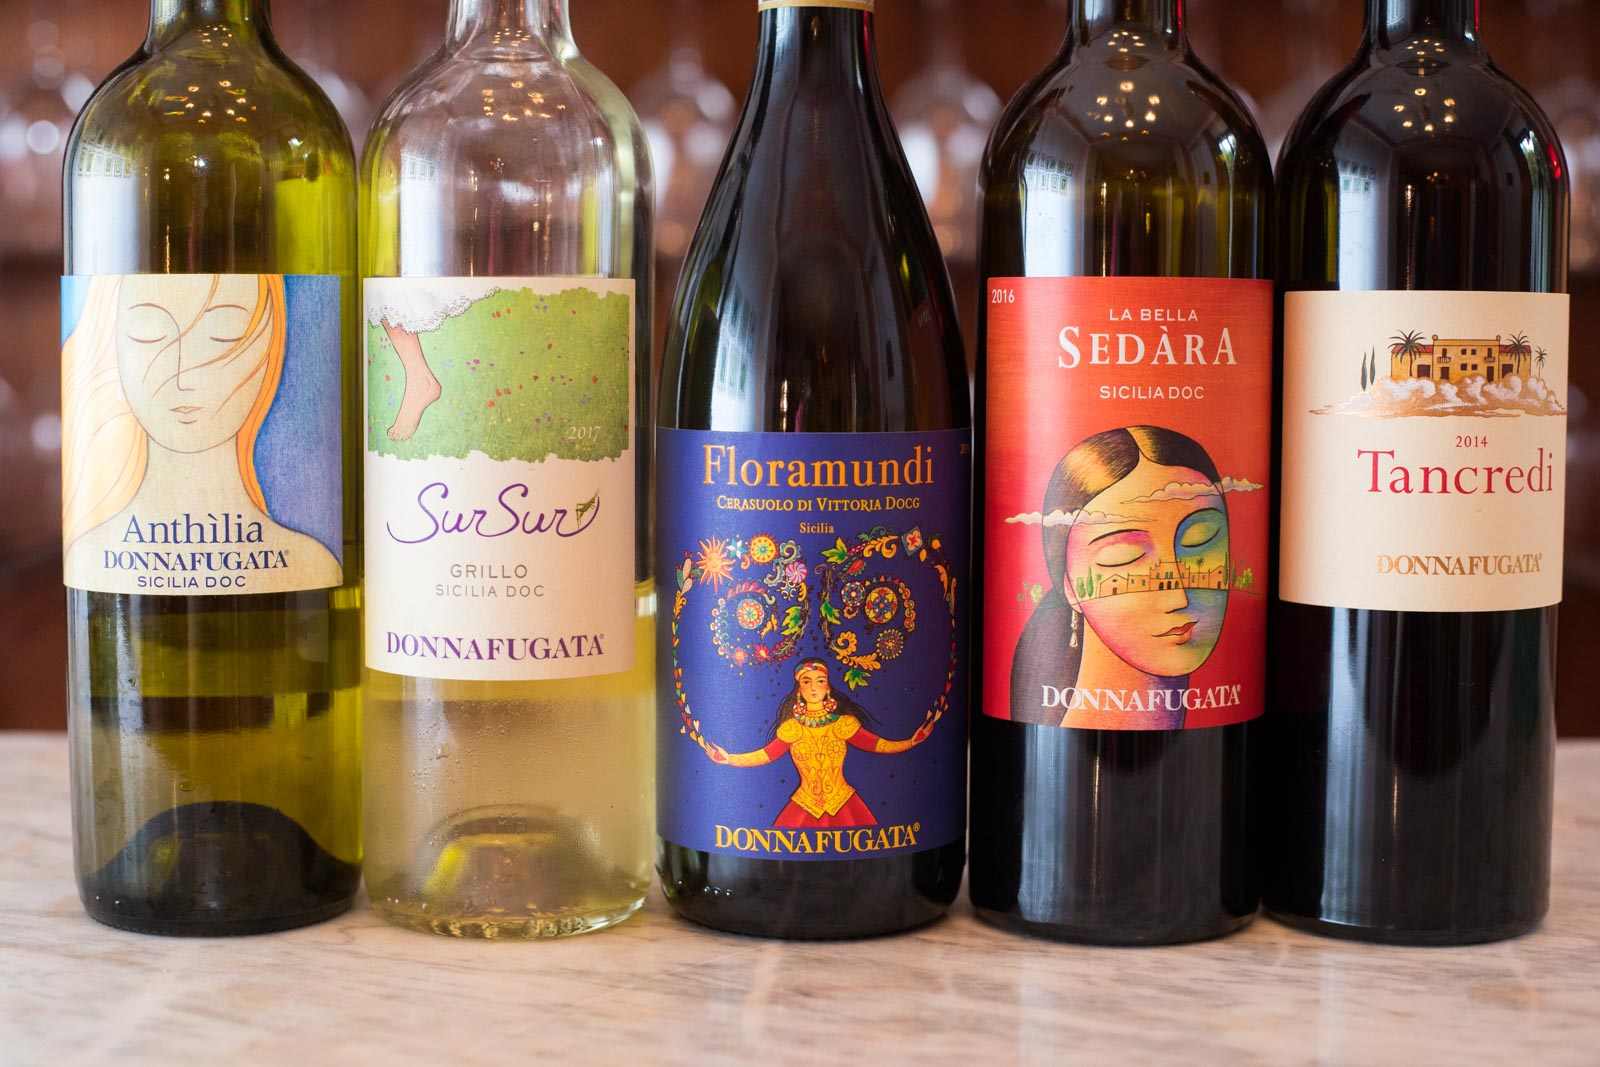 The wines of Donnafugata: Essential Winemaker of Italy